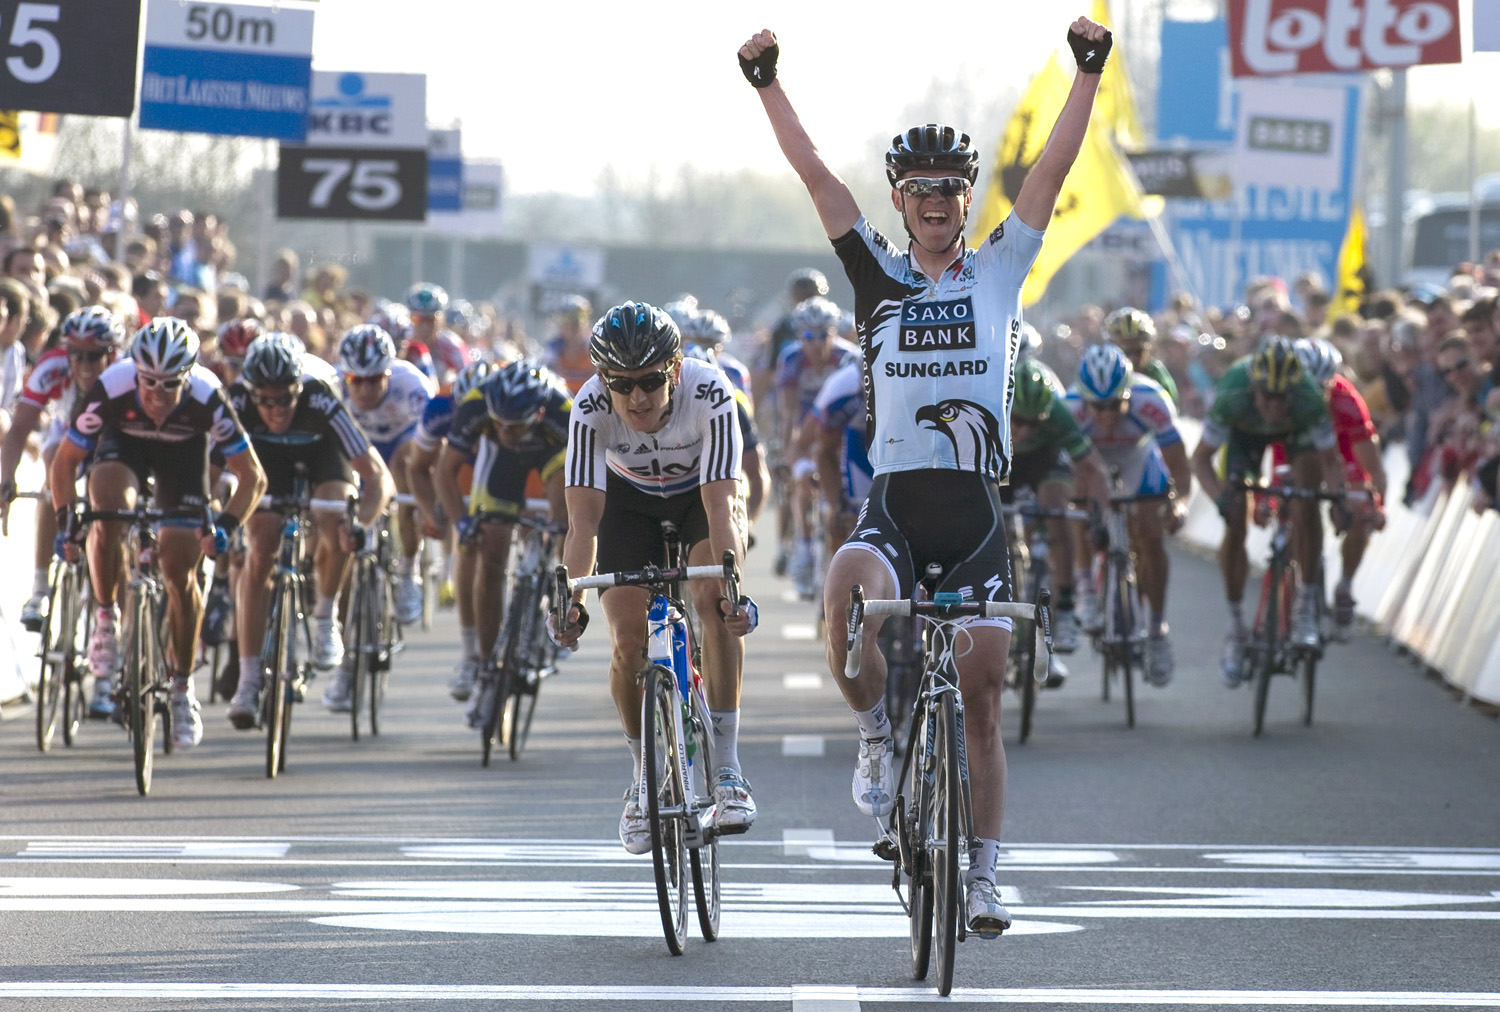 Nick Nuyens wins as Geraint Thomas places second in Dwars door Vlaanderen 2011